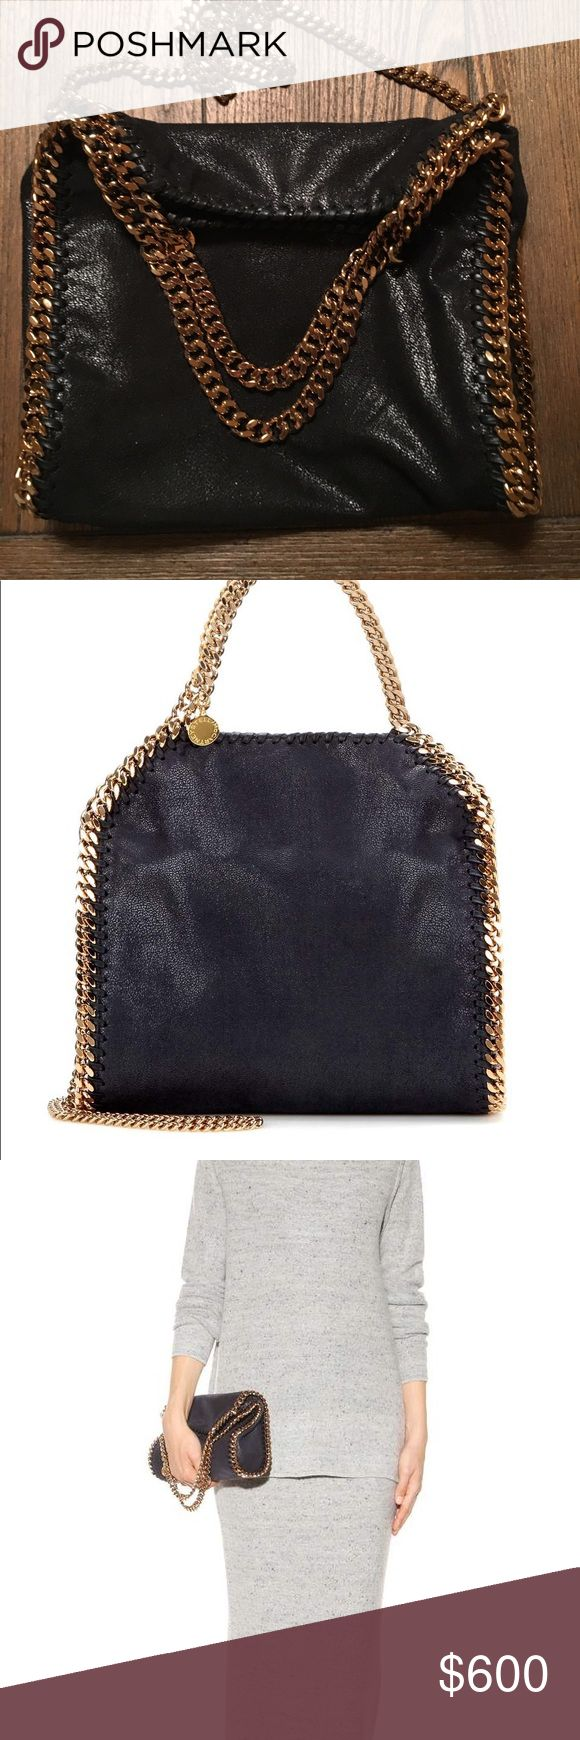 Stella McCartney mini Falabella bag Falabella mini faux brushed-leather shoulder bag.  Falabella shaggy deer small tote in black featuring a gold diamond cut chain trim and handles with a Stella McCartney logo disc.  Spot clean with a soft damp cloth and a small amount of neutral soap. Avoid scrubbing in order not to damage the textured surface of the bag.  This bag is made from non-leather, cruelty-free materials using highly skilled manufacturing techniques. The lining has been created…